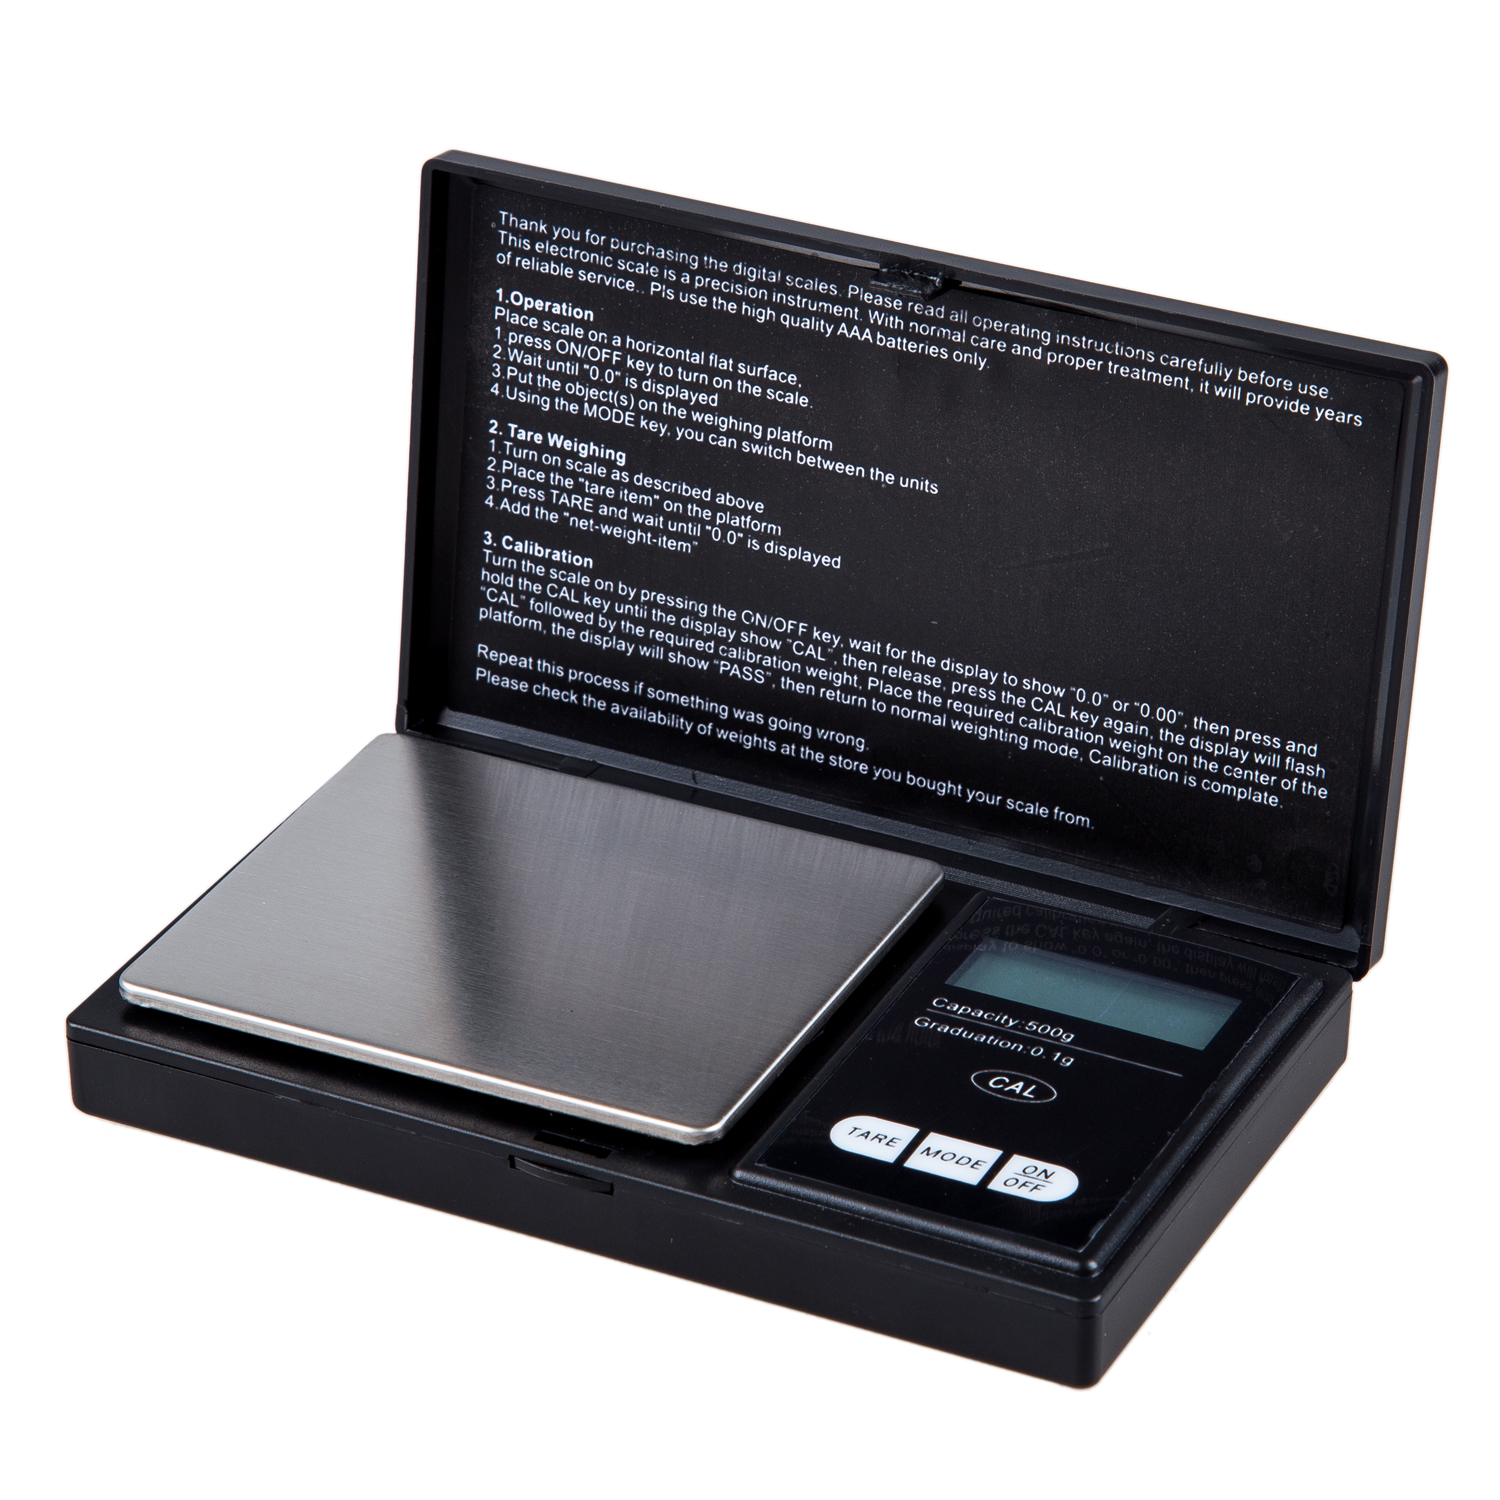 500g Pocket Scales with Calibration Weight for Gold Gems Jewelry Weighing 0.1g